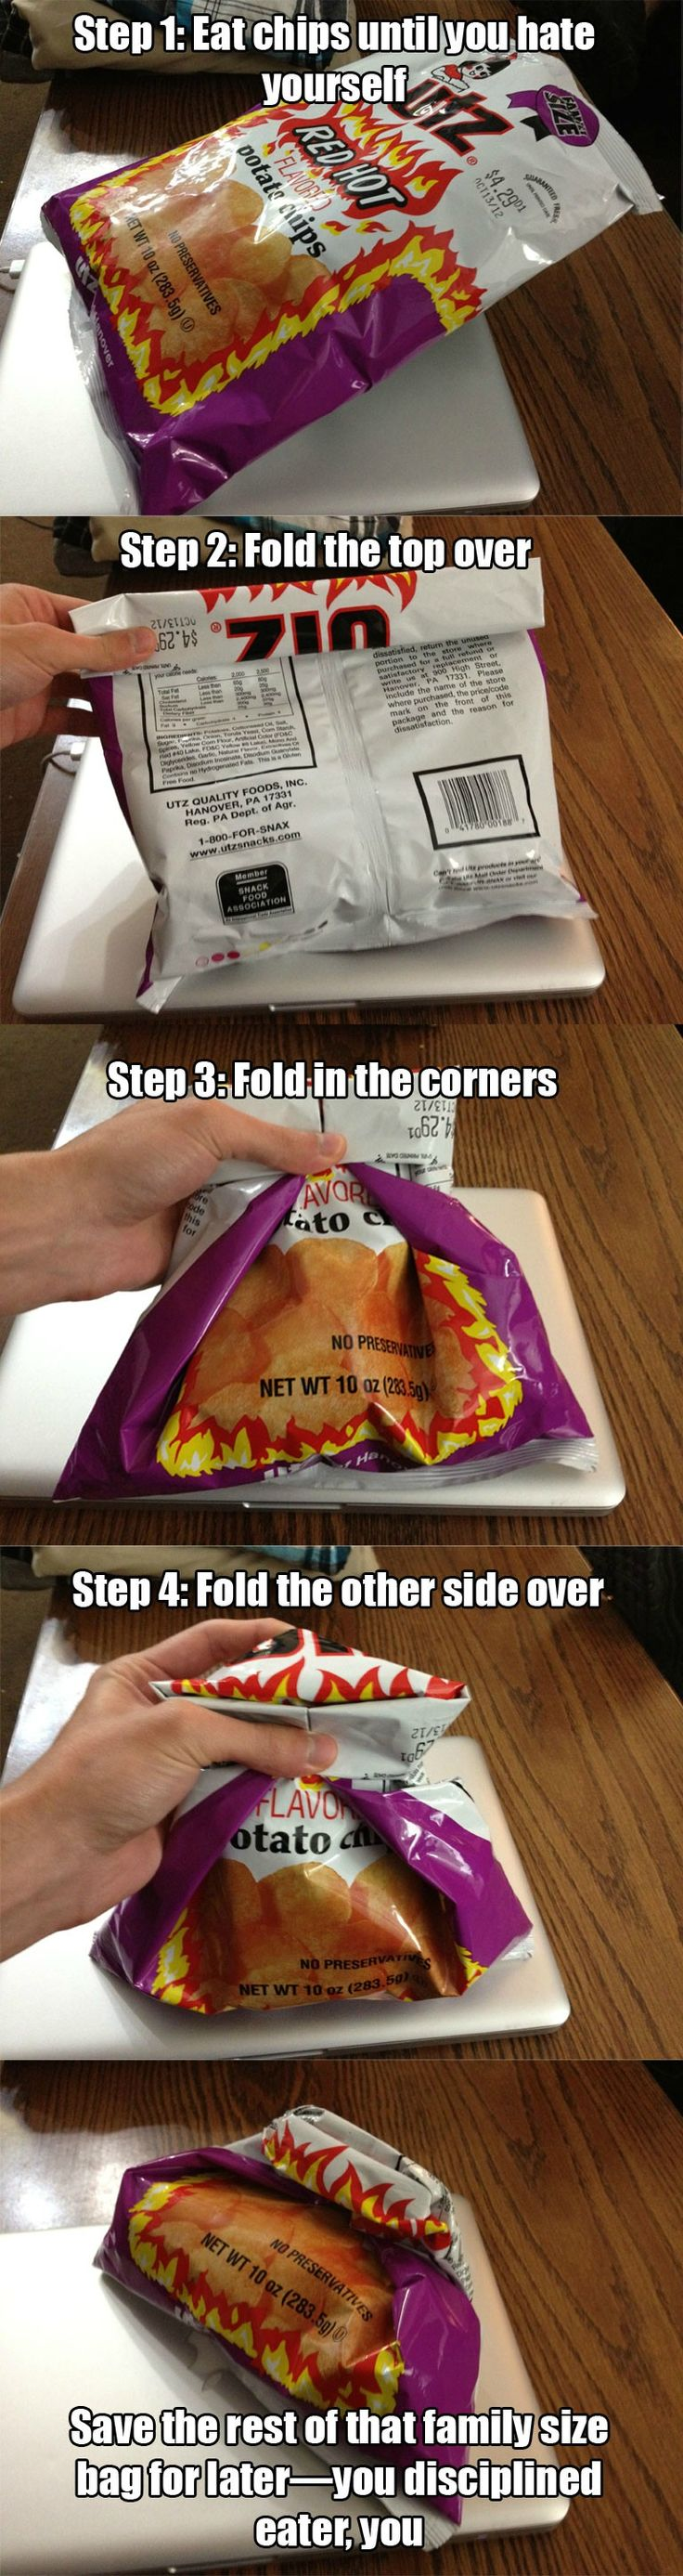 How to fold a chip bag so you don't need a clip.